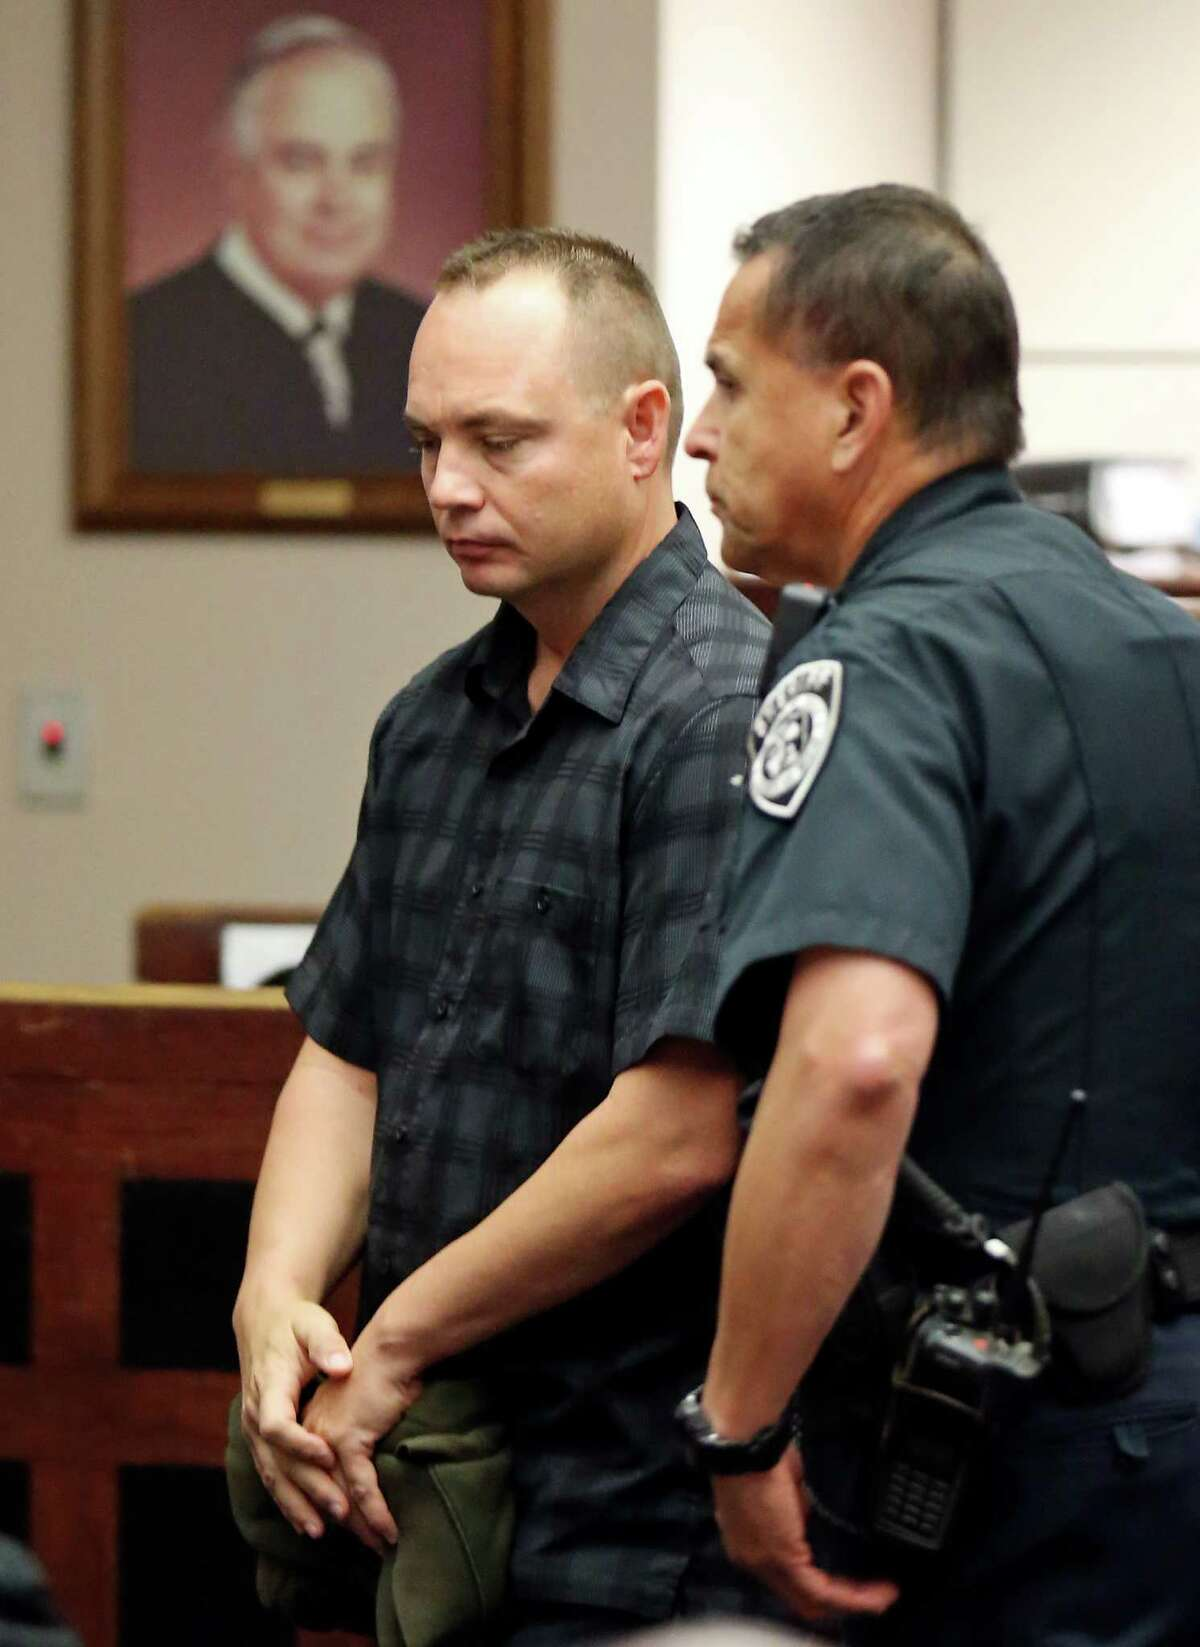 Former San Antonio police officer Jackie Len Neal (left) is escorted out of the 226th state District Court Monday Nov. 9, 2015 at the Cadena-Reeves Justice Center. Neal was accused of raping a woman in the back of his patrol SUV in 2013. He was fined and sentenced to 14 months in a state jail facility as part of a plea agreement. Neal pleaded no contest to improper sexual activity with a person in custody. As part of the deal, he was fined $5,000 and agreed to surrender his peace officer certification.